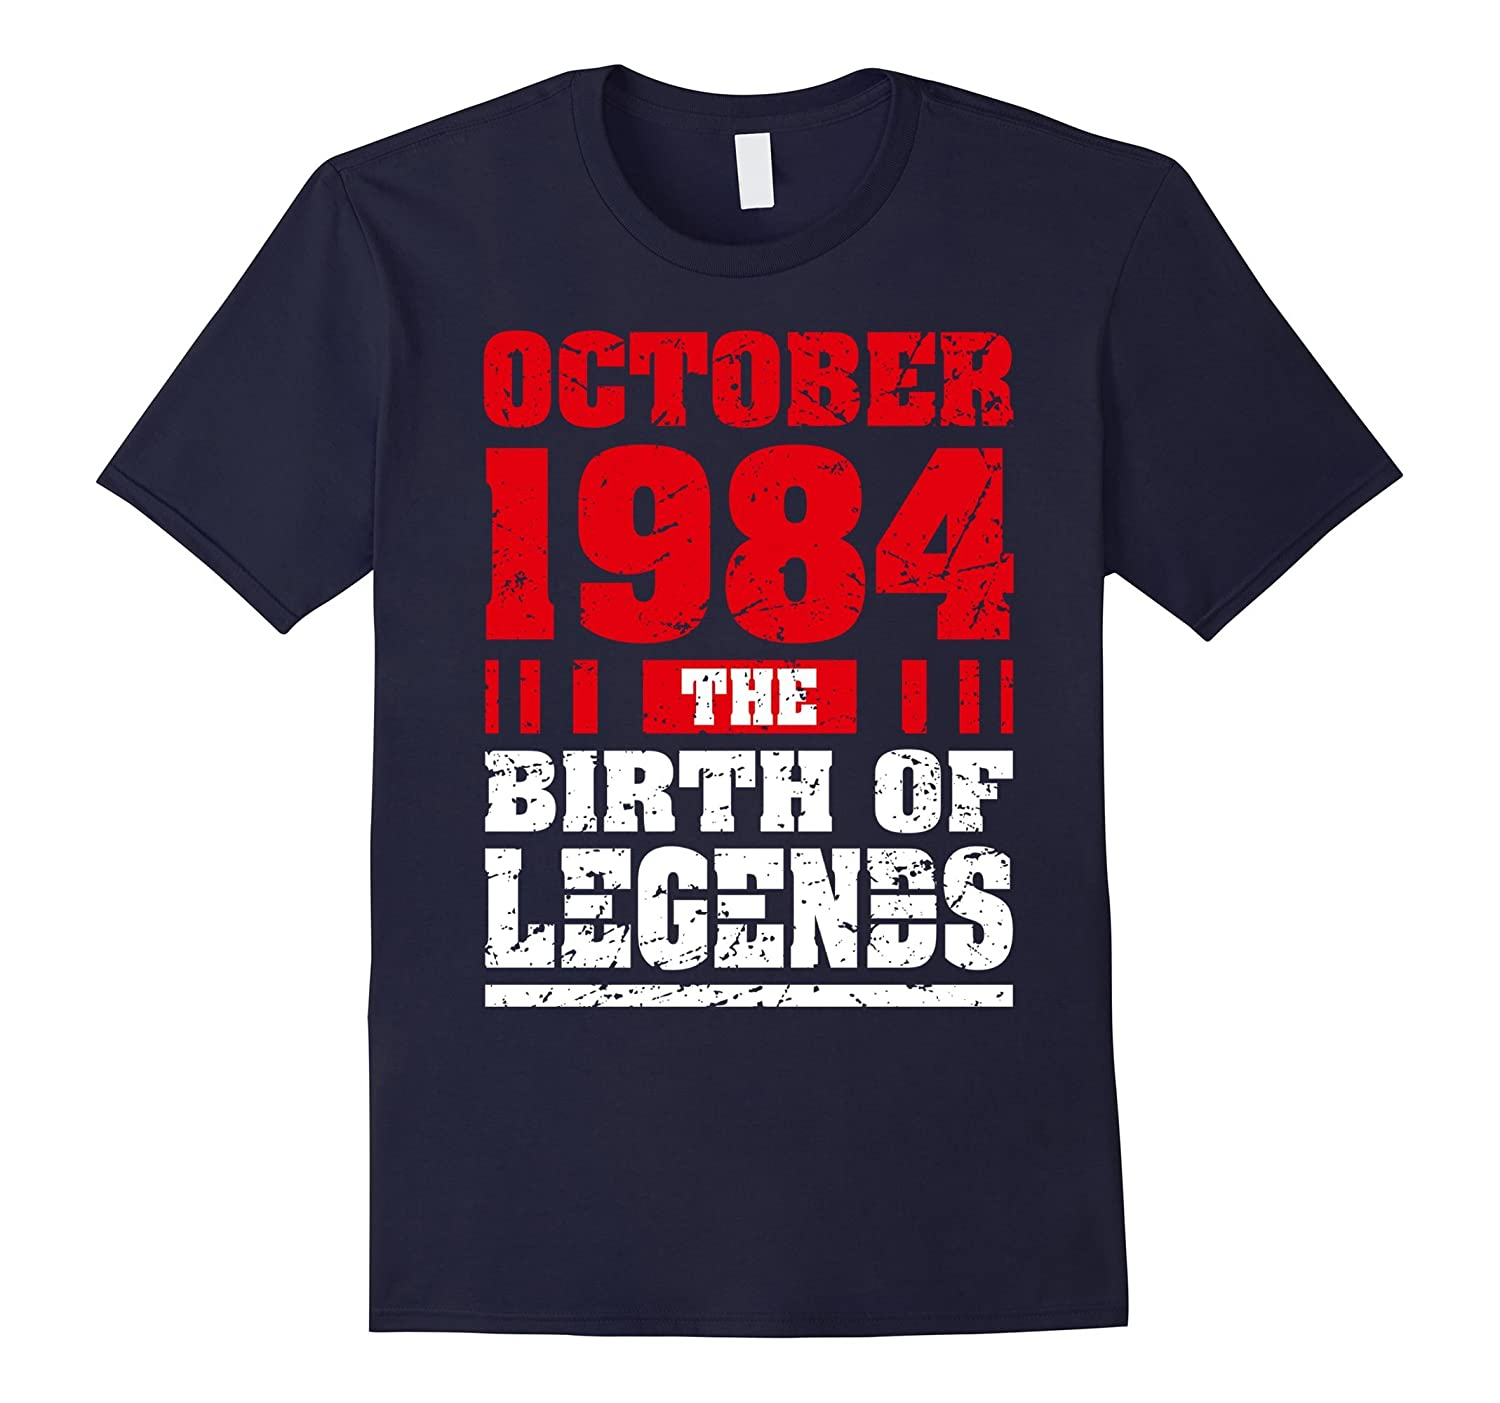 Born in October 1984 Clothes 33-Year-Old Birthday Gifts Tees-TJ